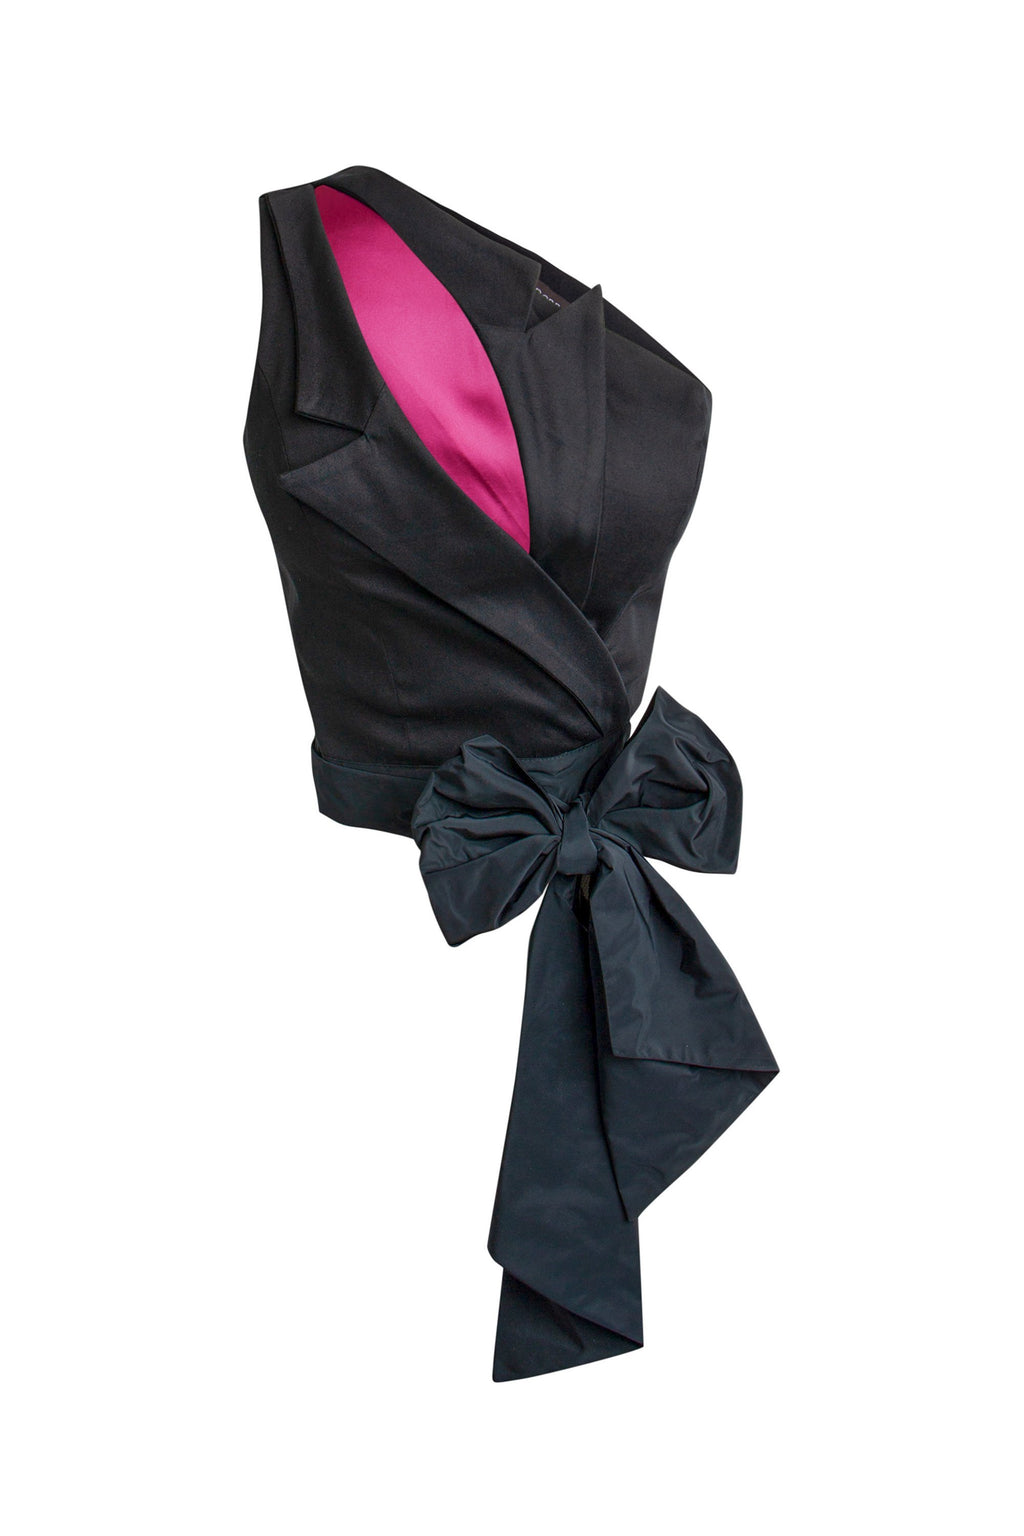 Corporate Elegance Blazer Inspired Self-Tie Top - Black - Tia Dorraine London